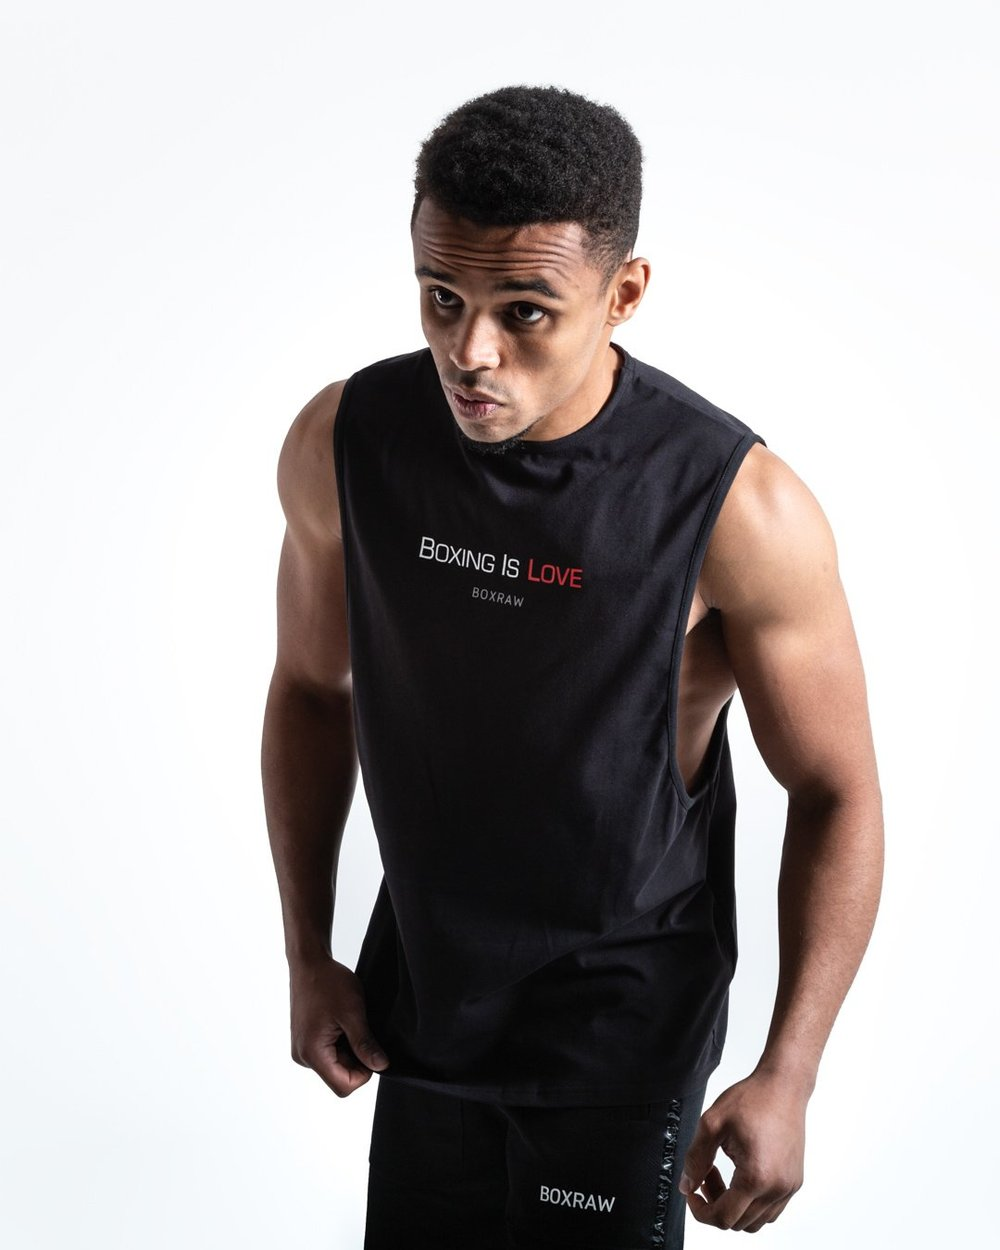 BOXING IS LOVE MUSCLE TANK - BLACK - Pandemic Fight Gear Inc.